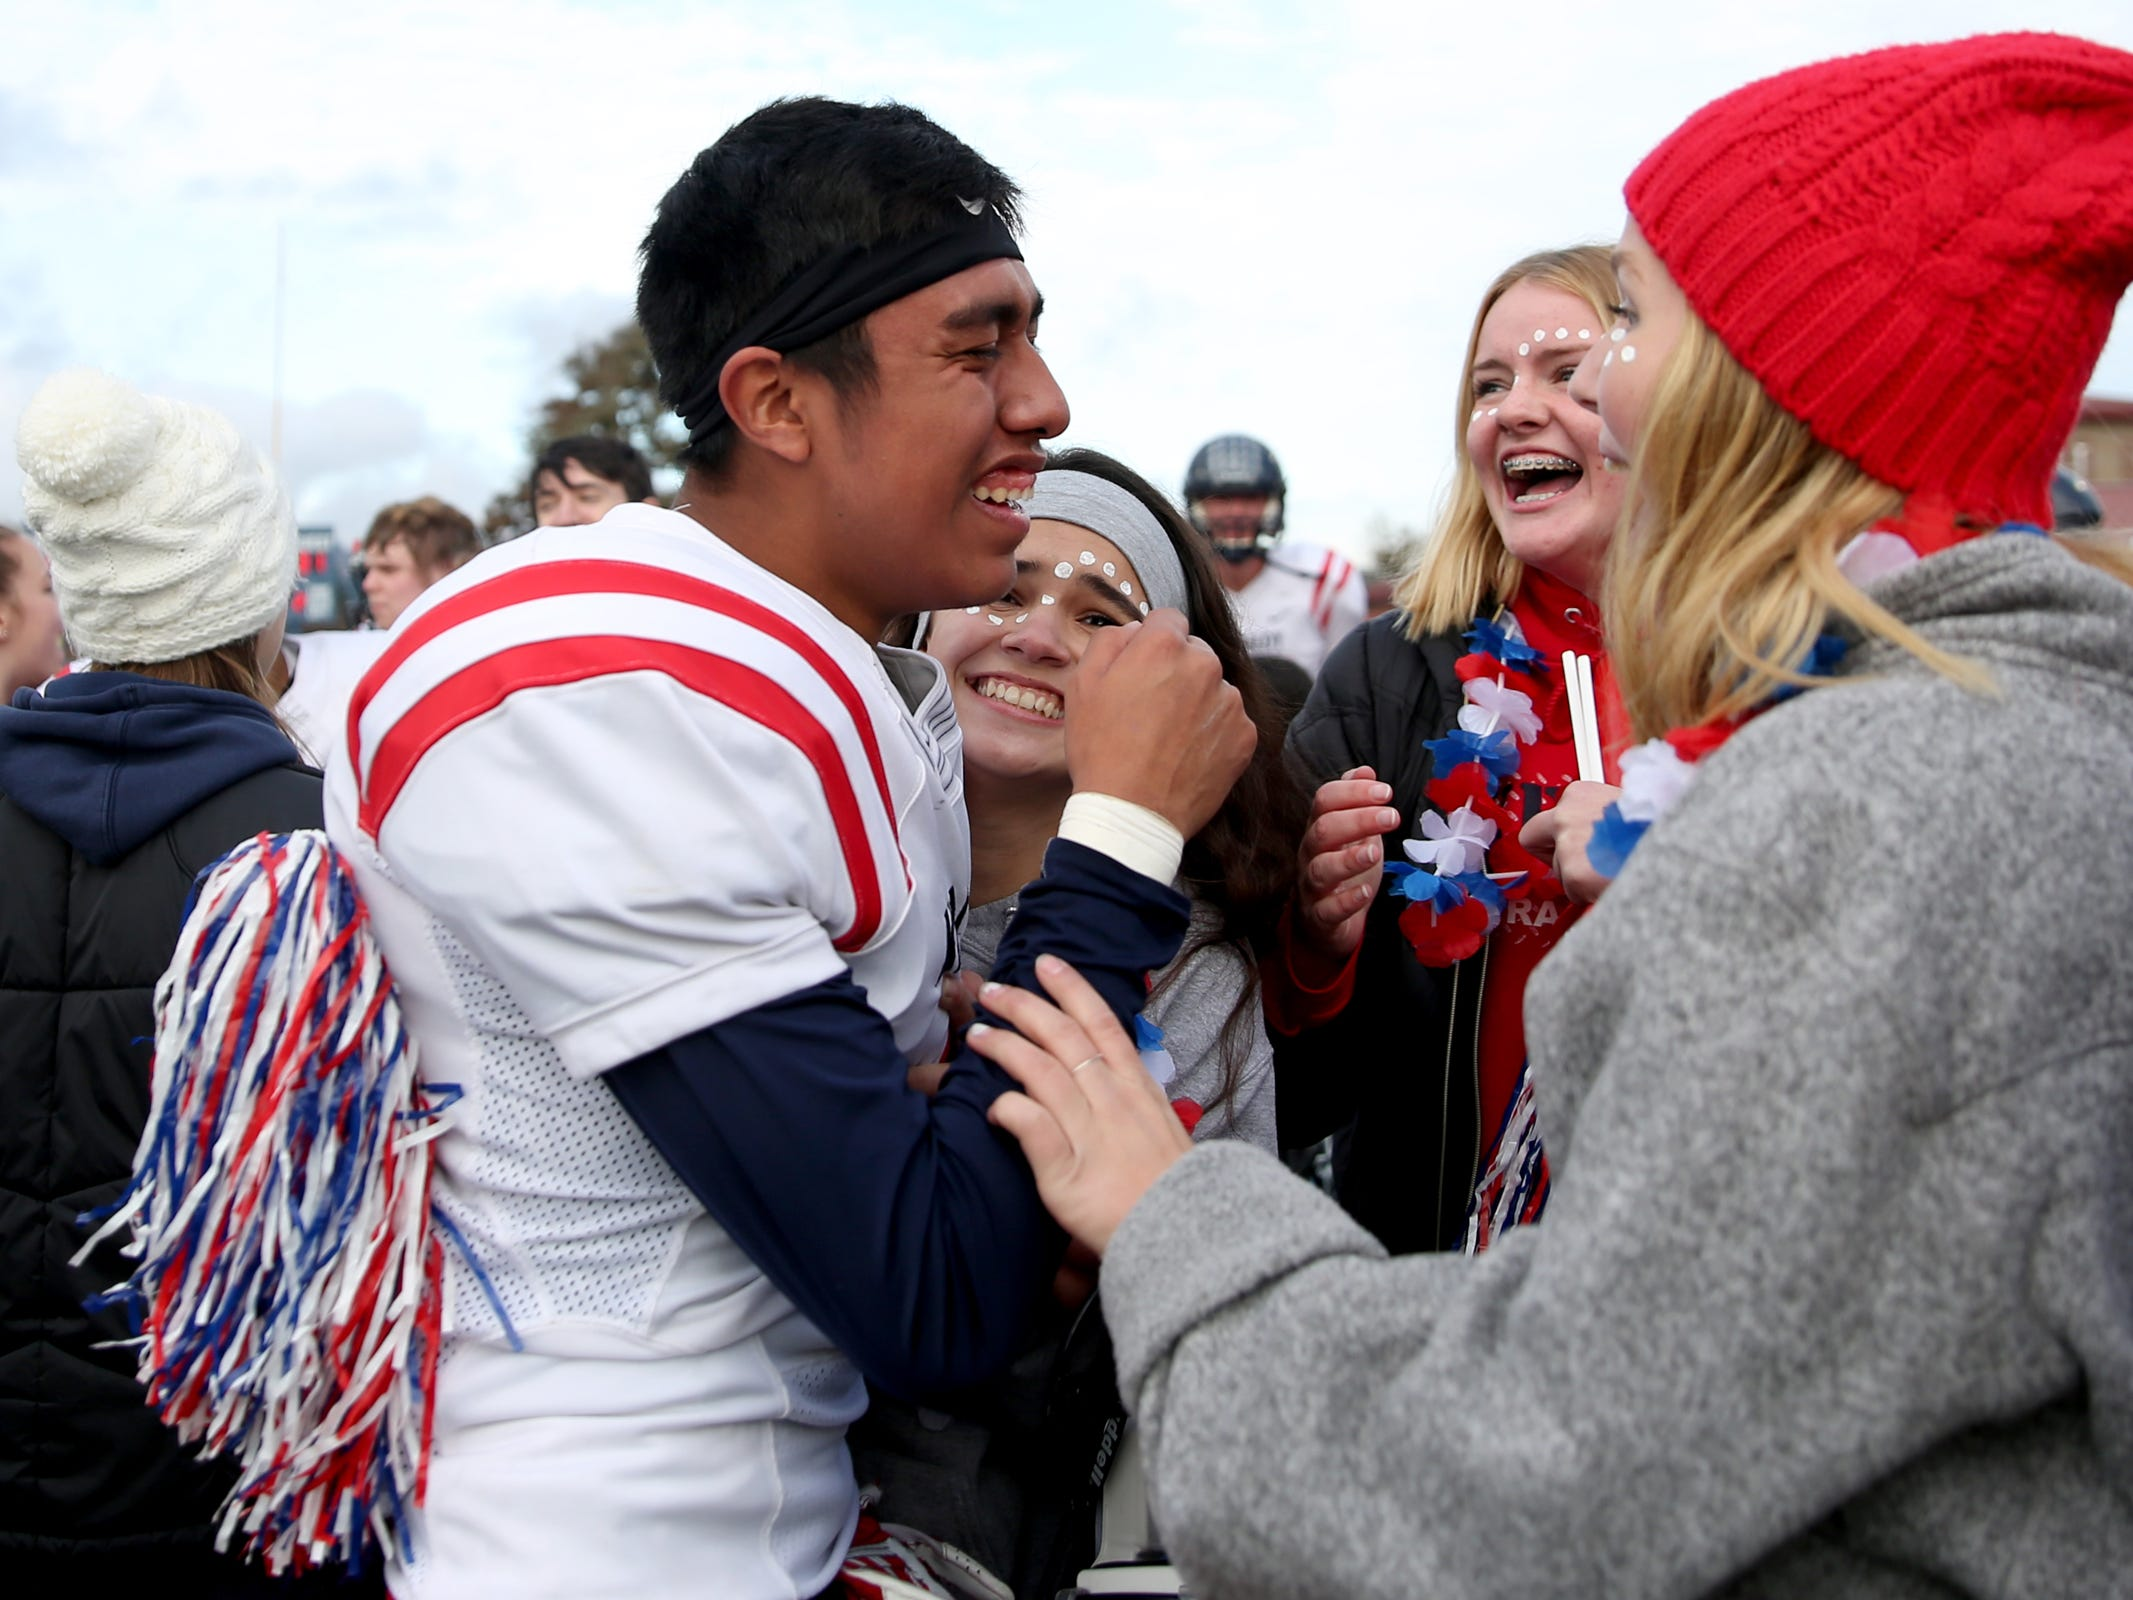 Kennedy's Brandon Salazar (6) celebrates with fans following the Kennedy vs. Santiam OSAA Class 2A state championship football game at Cottage Grove High School in Cottage Grove on Saturday, Nov. 24, 2018. Kennedy won the championship 31-20.